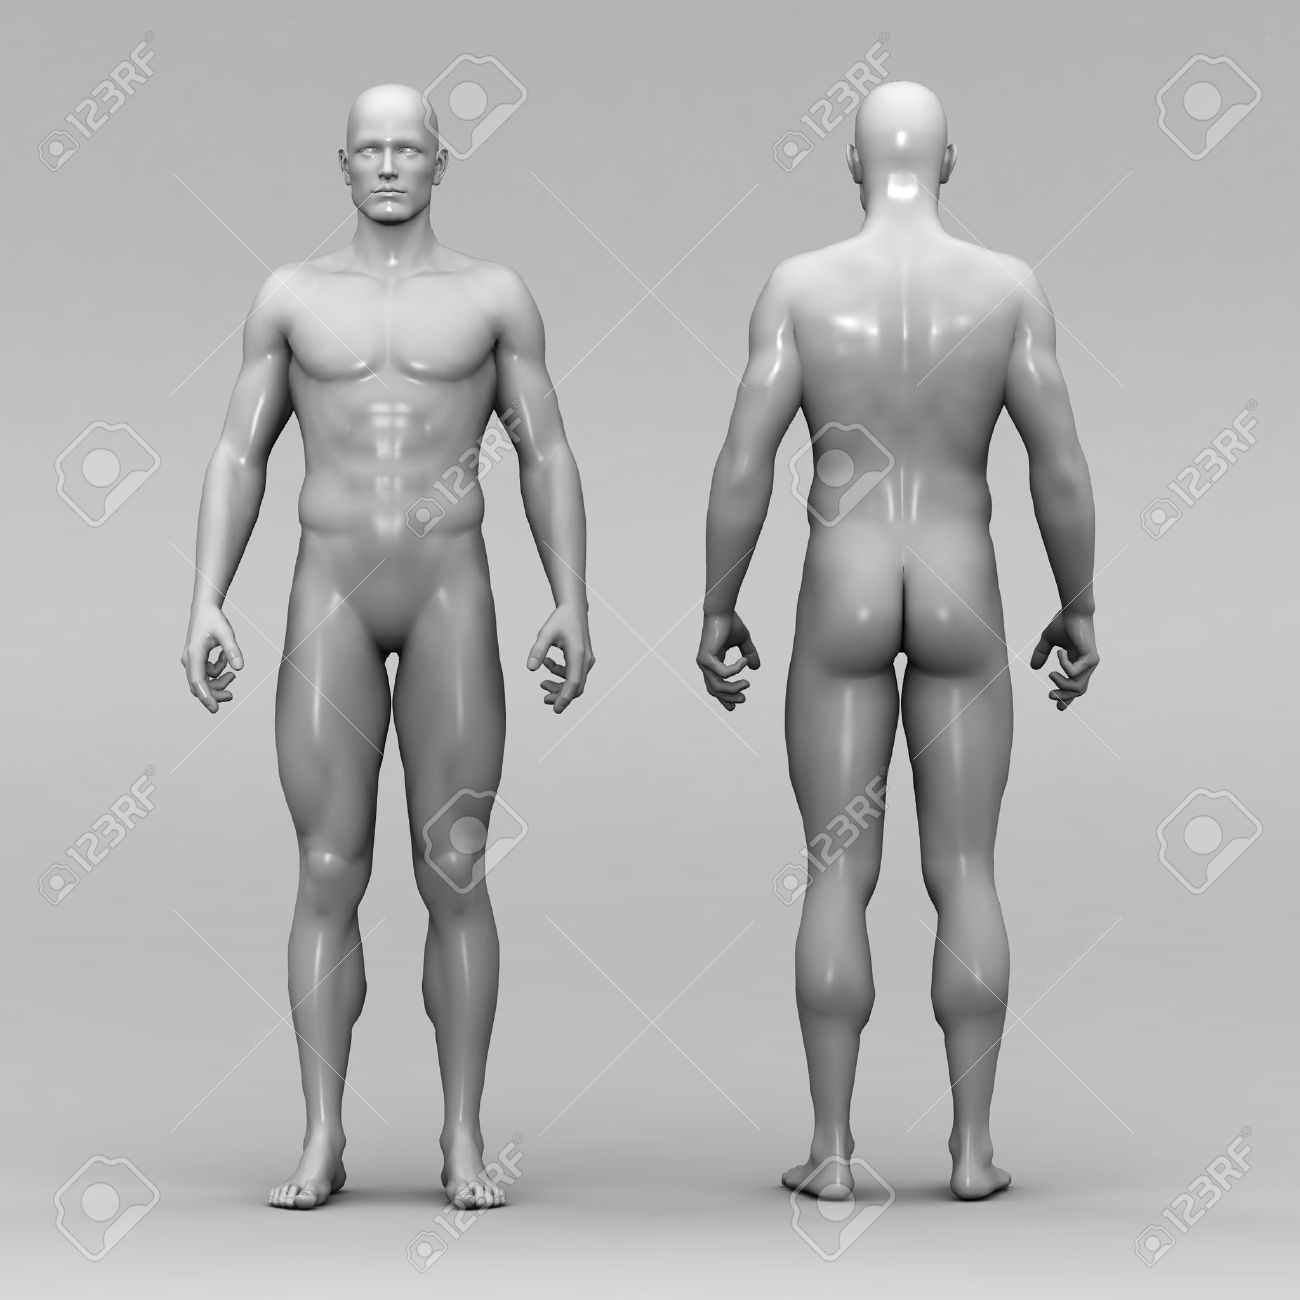 Athletic Male Human Anatomy Stock Photo, Picture And Royalty Free ...